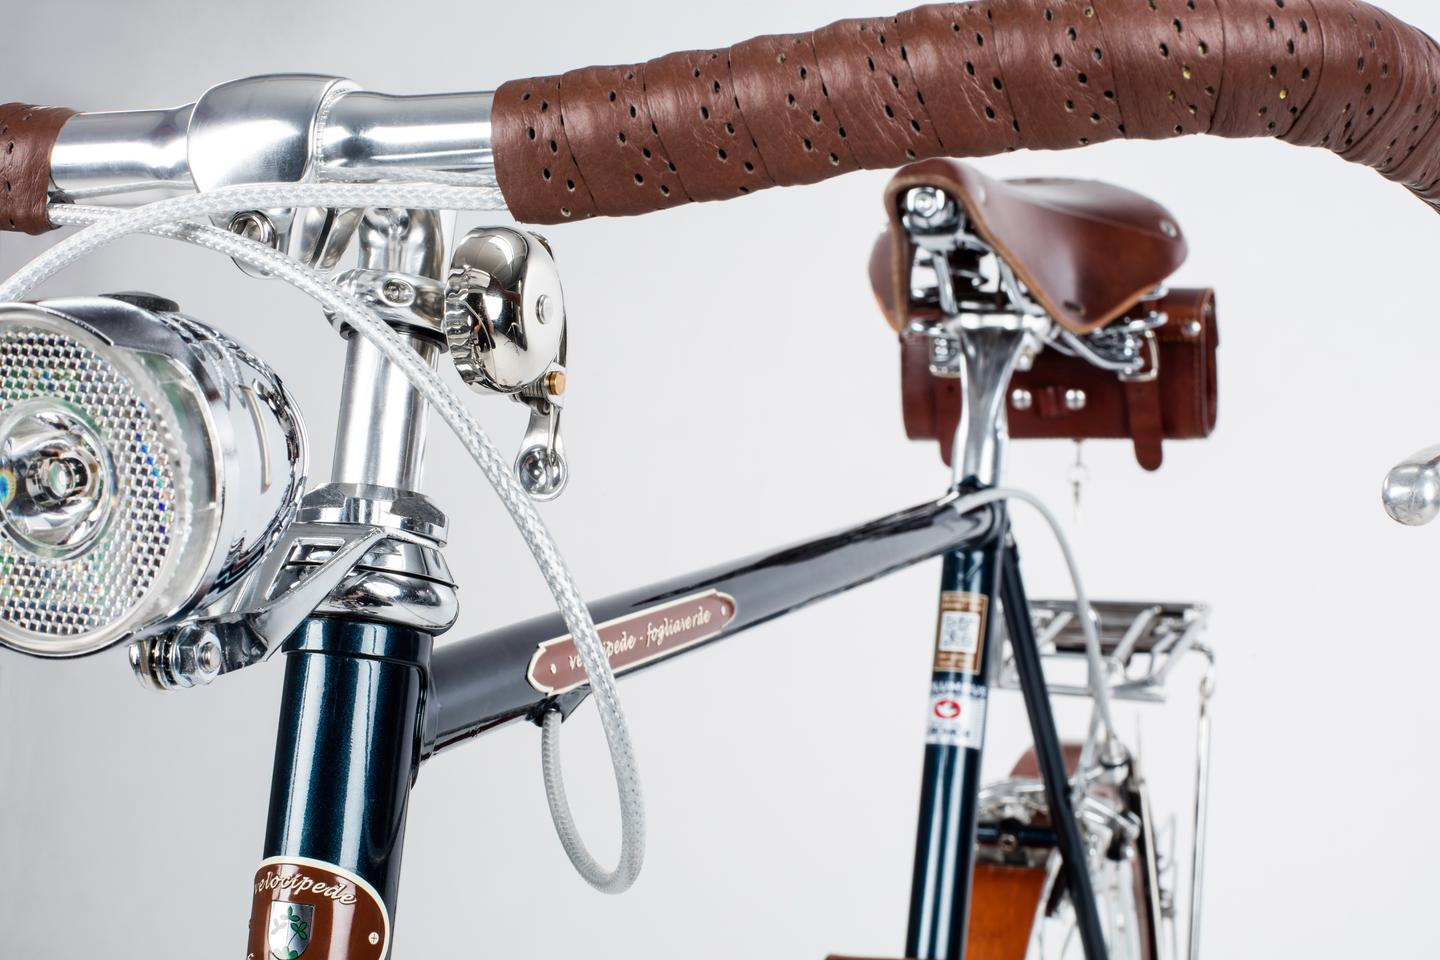 The Velocipede Fogliaverde bikes come complete with all equipment and accessories